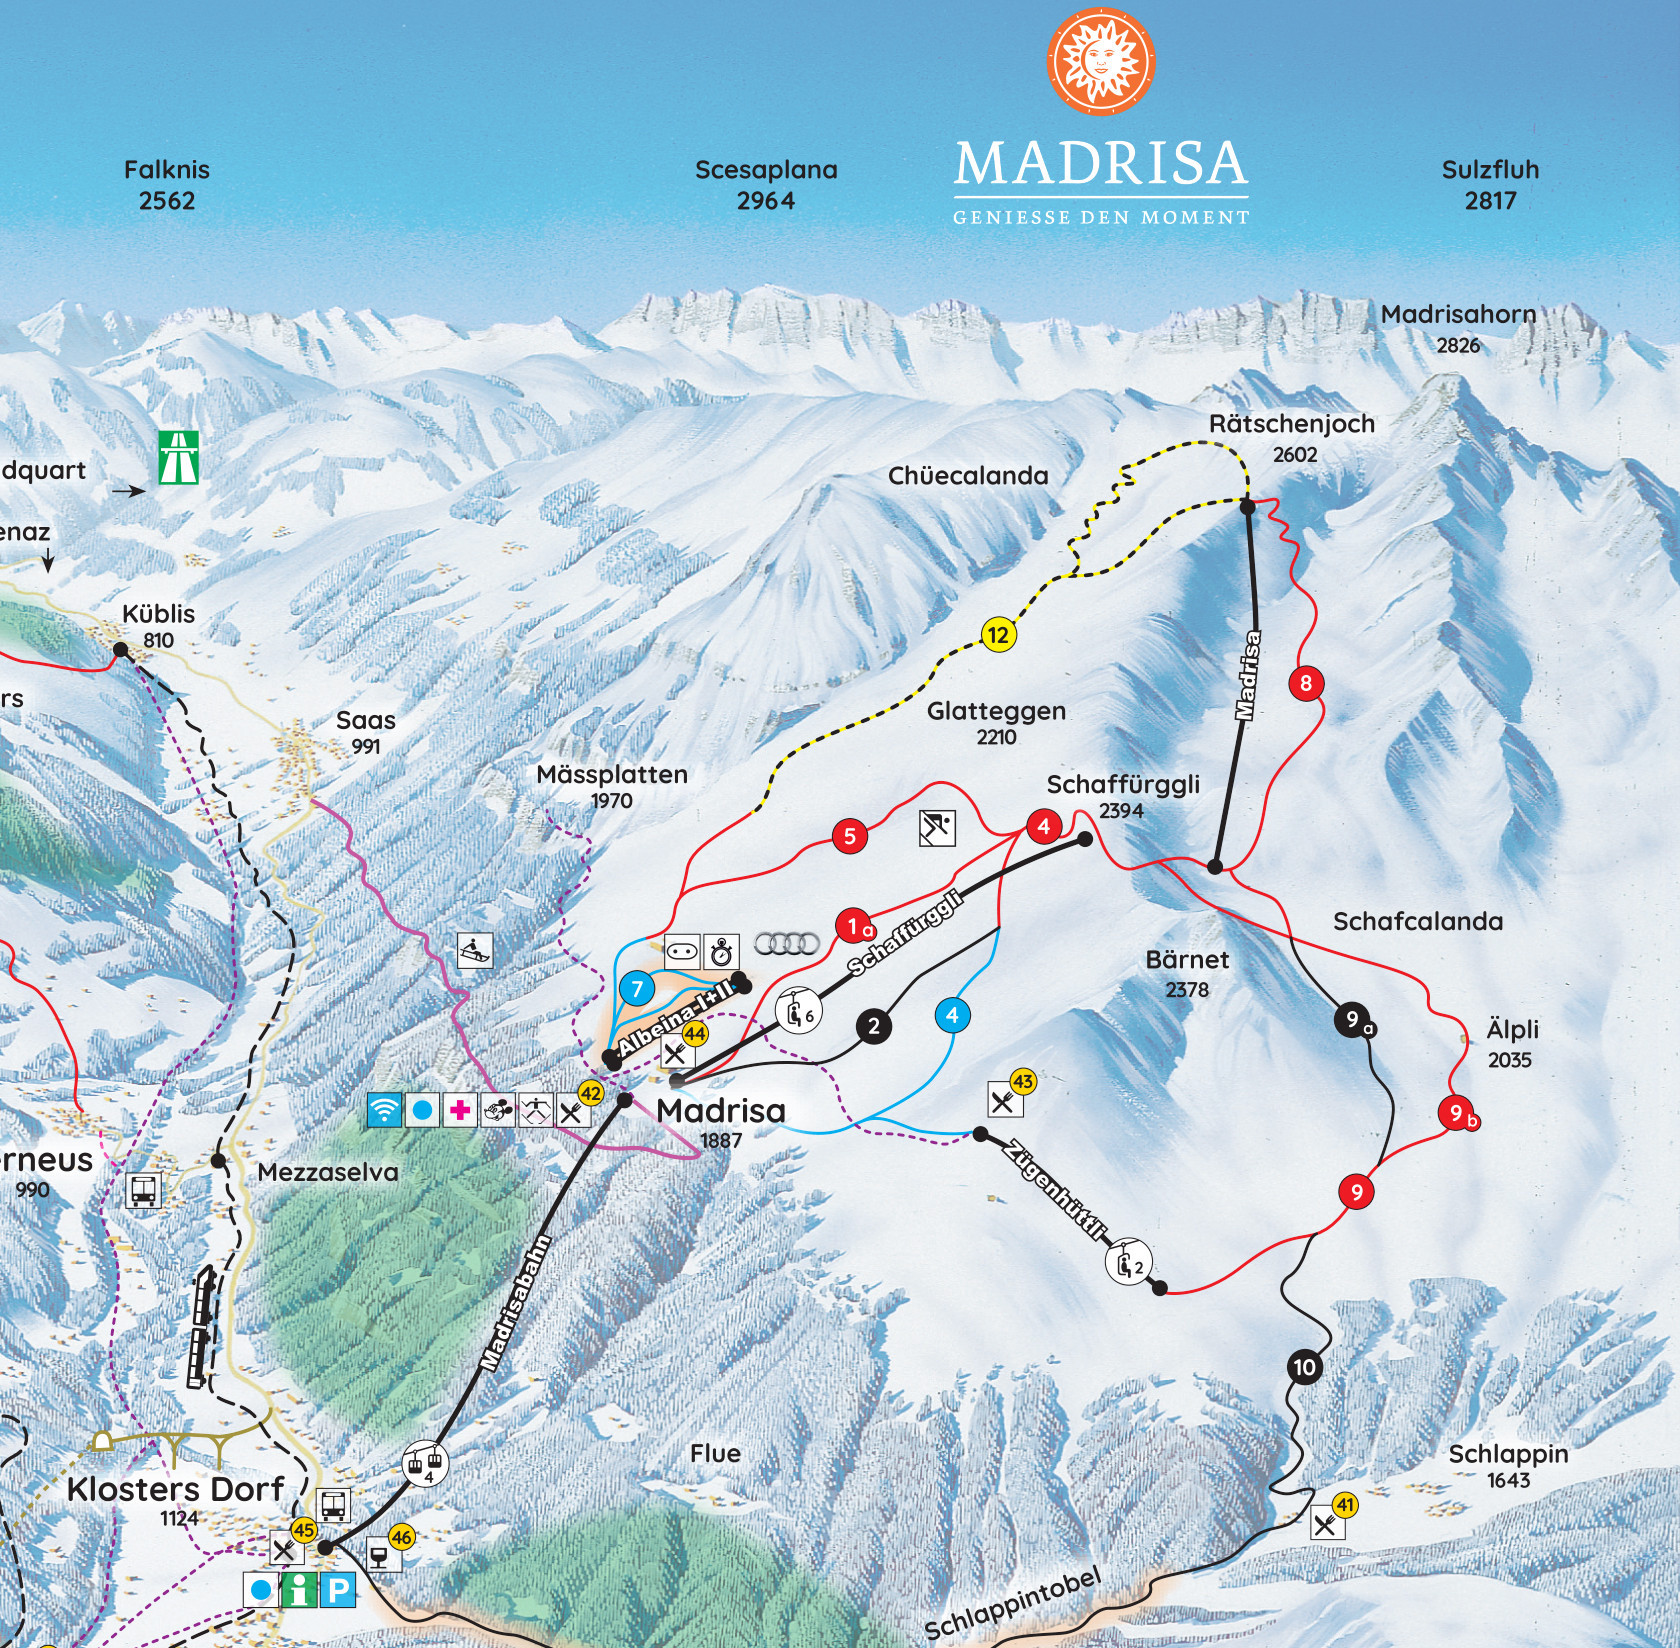 madrisa klosters trail map • piste map • panoramic mountain map